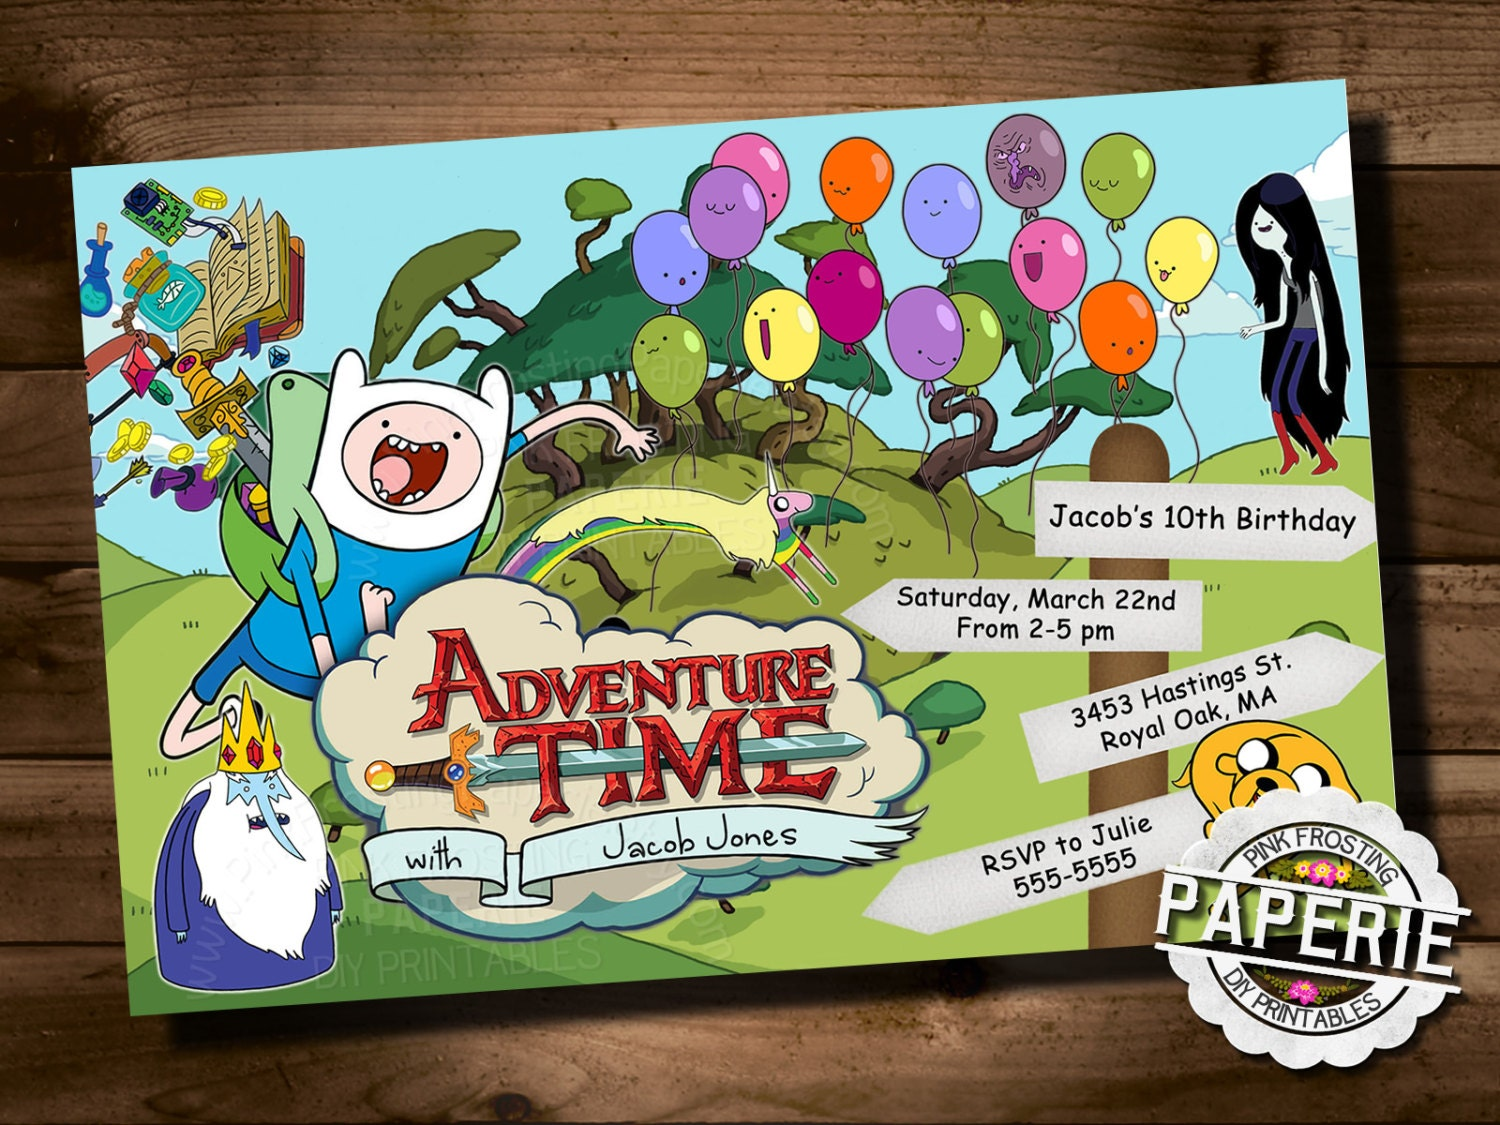 ADVENTURE TIME Birthday Party Invitaiton Kids Jake and